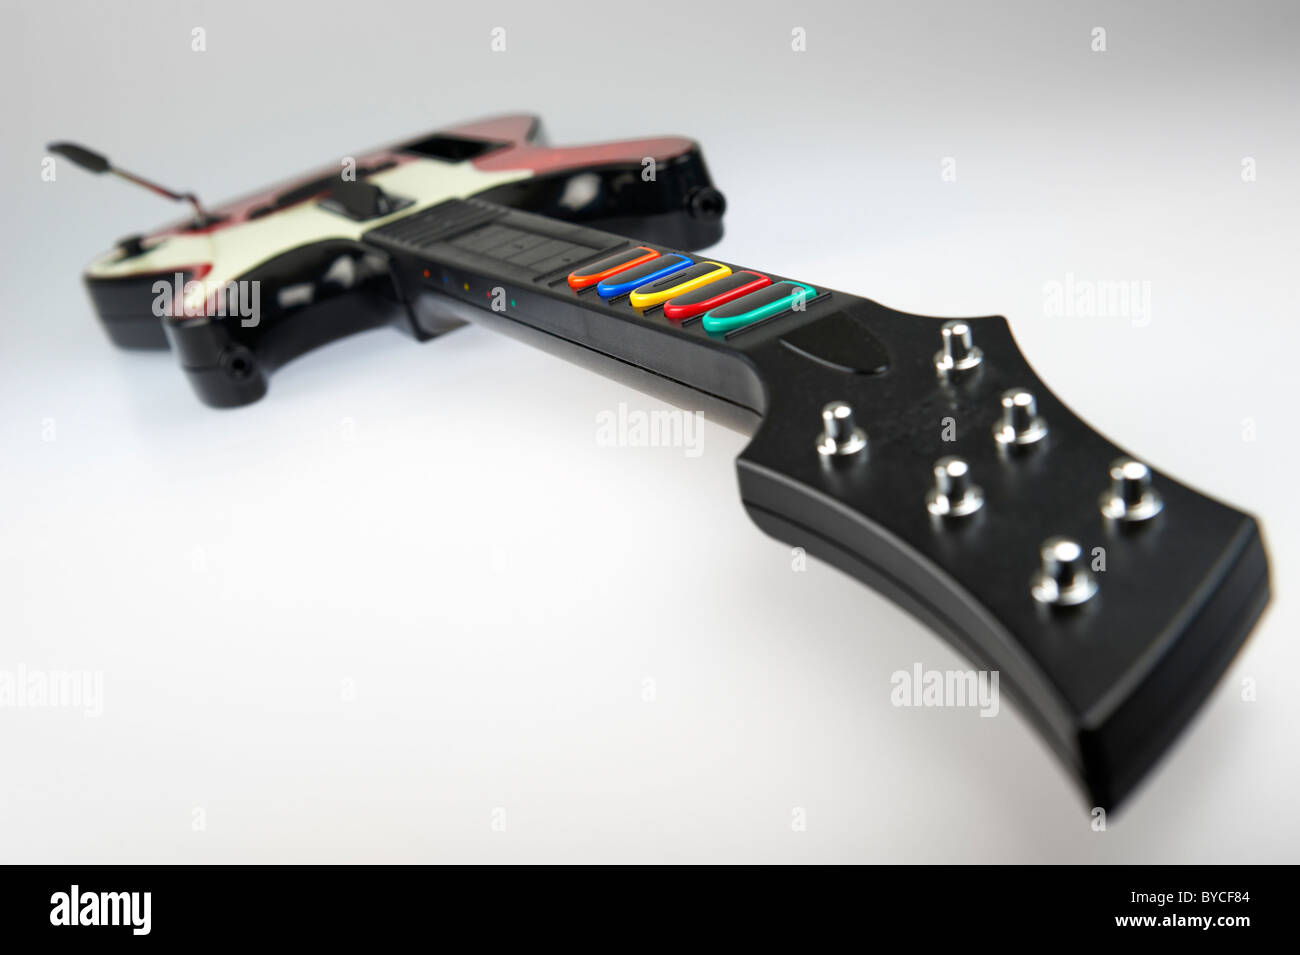 Band Hero guitar controller from the video game franchise Guitar Hero - Stock Image